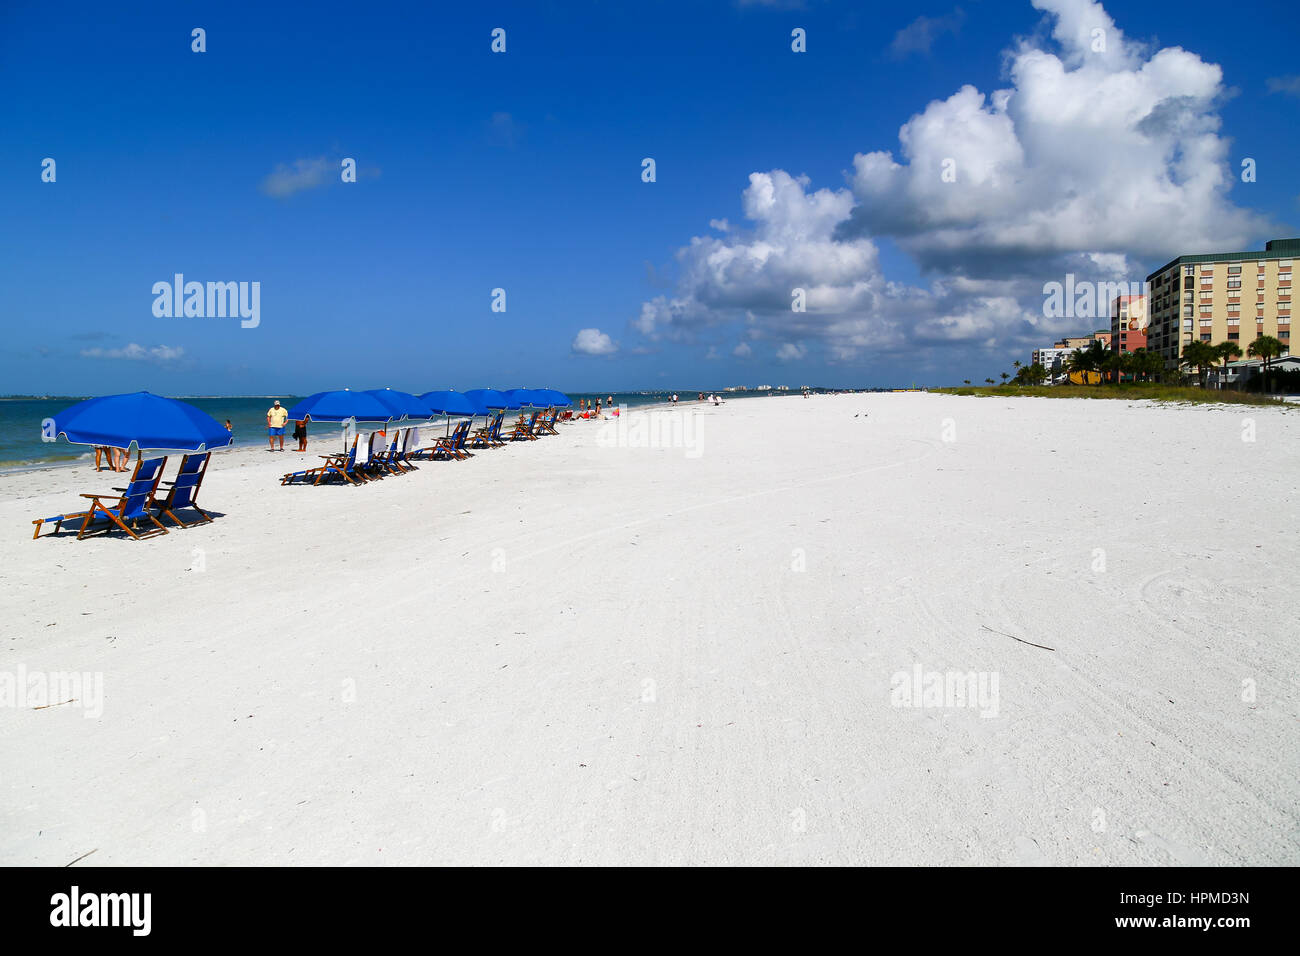 Fort Myers Beach, USA - May 12, 2015: Beach chairs and sunshades on the beach with apartment blocks and hotels on Stock Photo